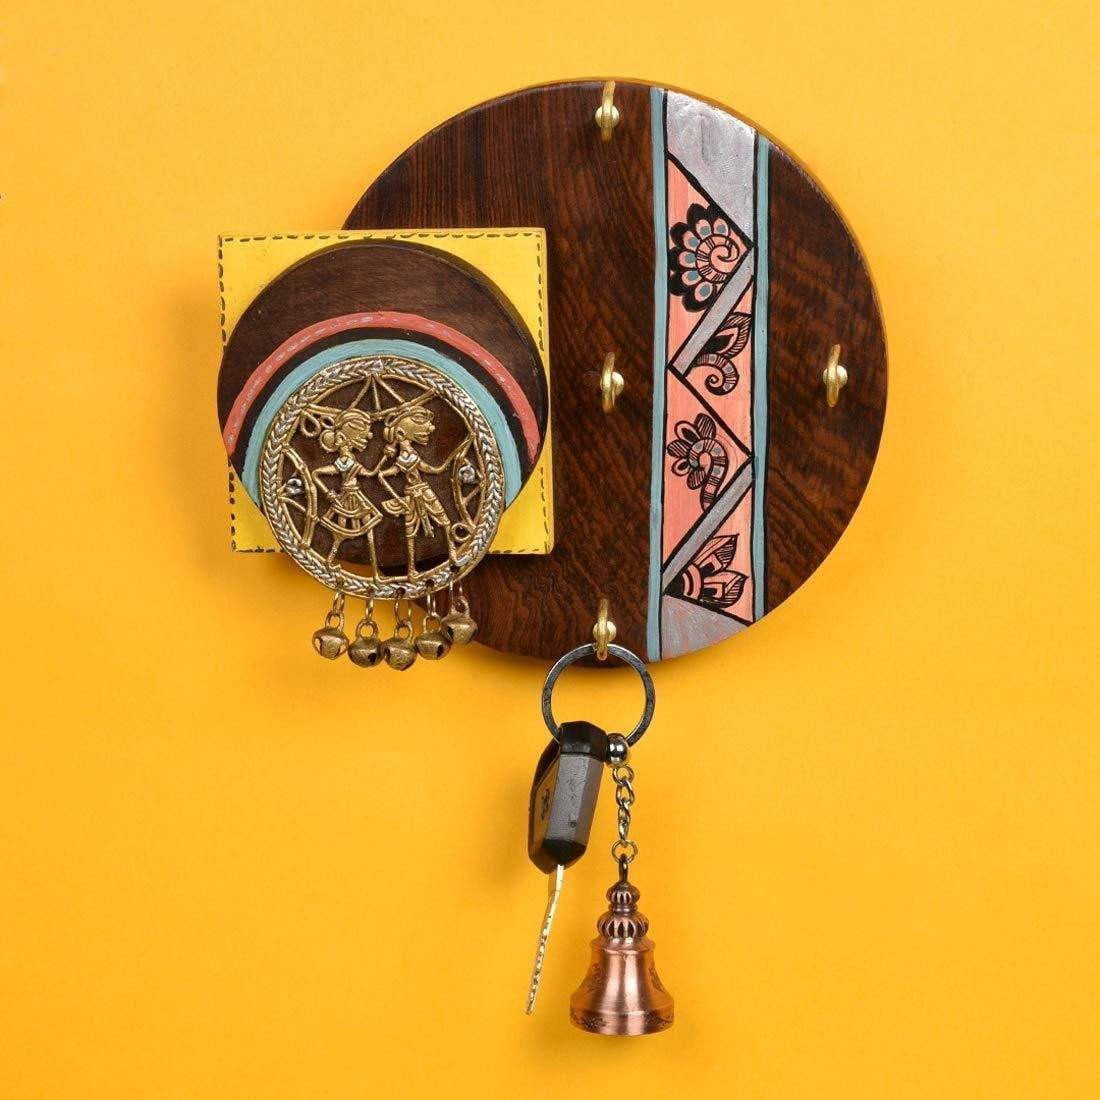 Hand Crafted Wall Mounted Key Organizer